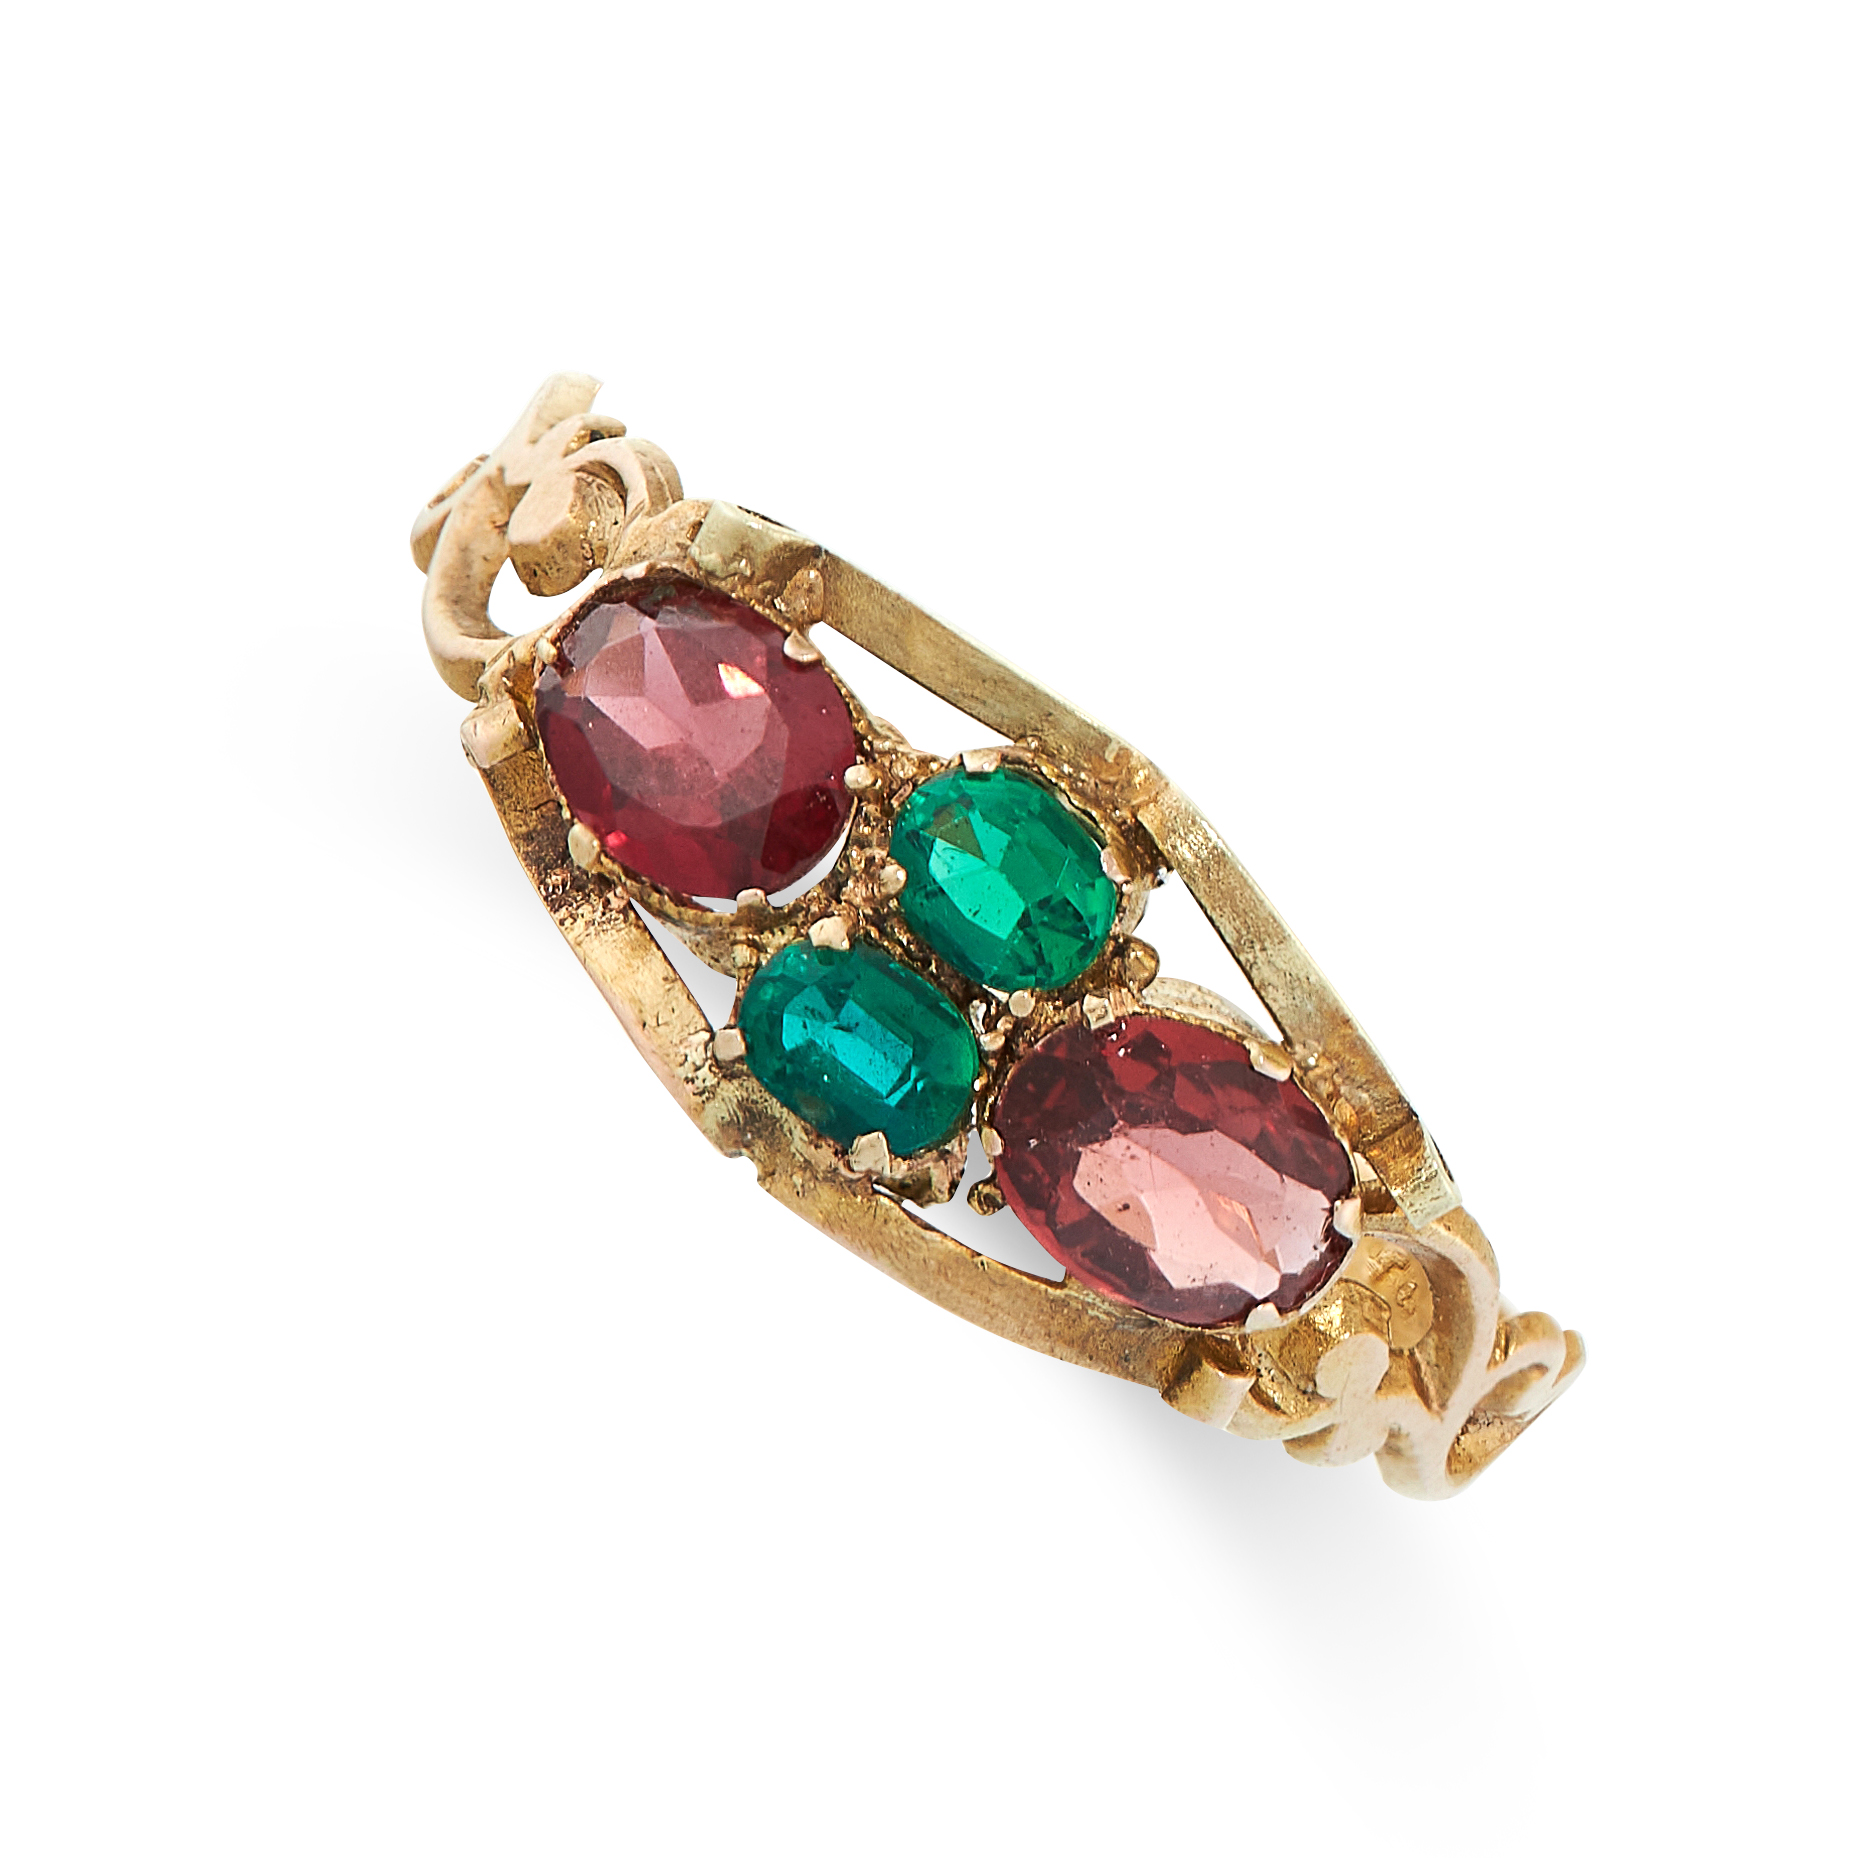 ANTIQUE GEMSET RING, 1858 in 12ct yellow gold, comprising of two oval cut green gemstones between